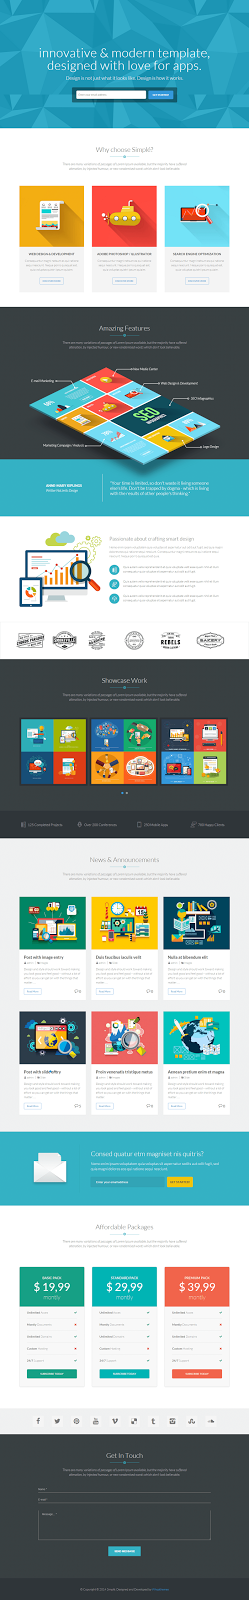 Bootstrap WordPress Theme 2015